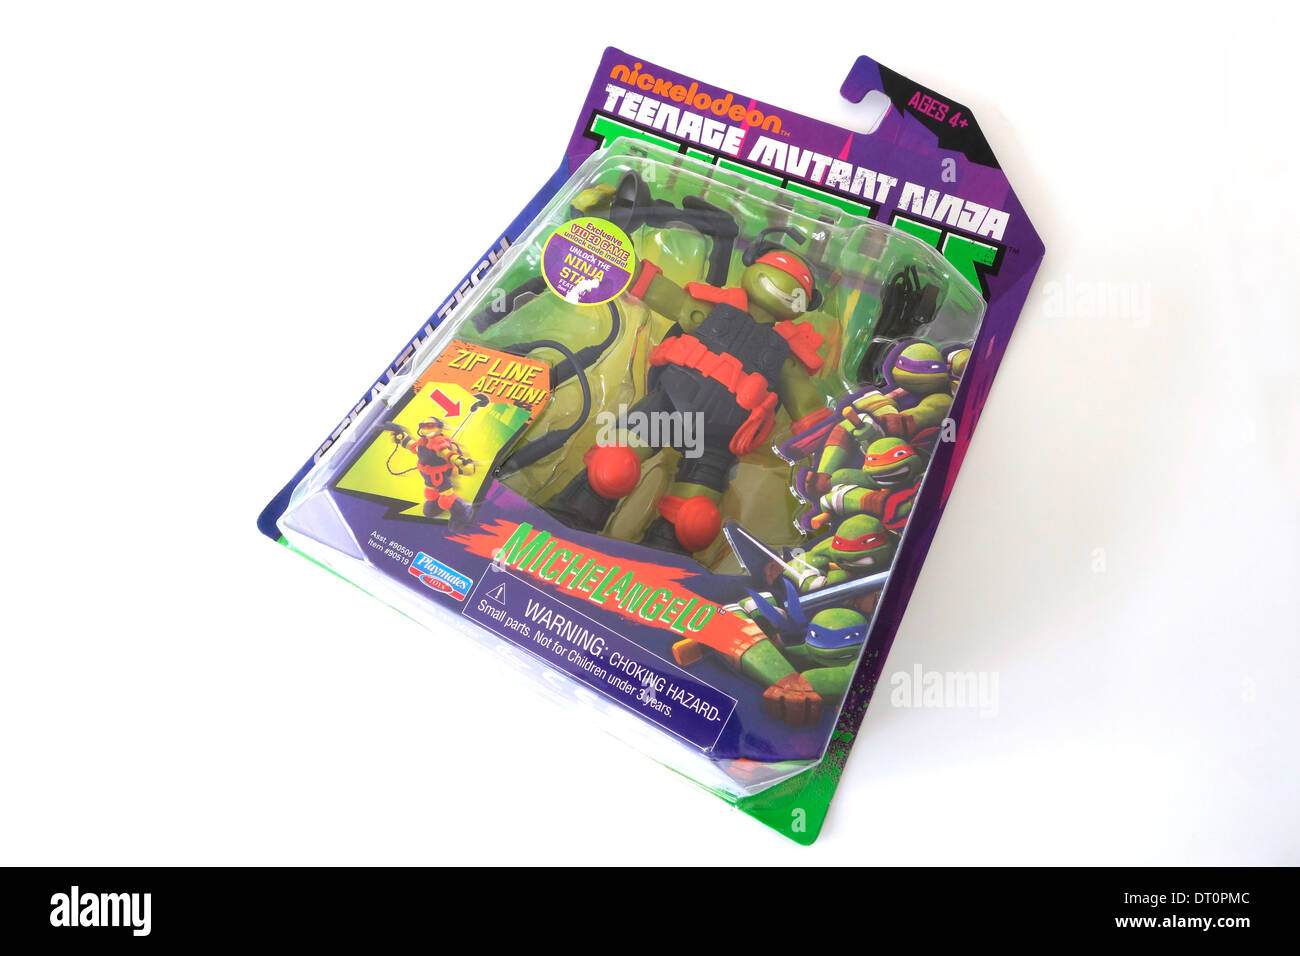 Nickelodeon Teenage Mutant Ninja Turtles Michelangelo Toy Action